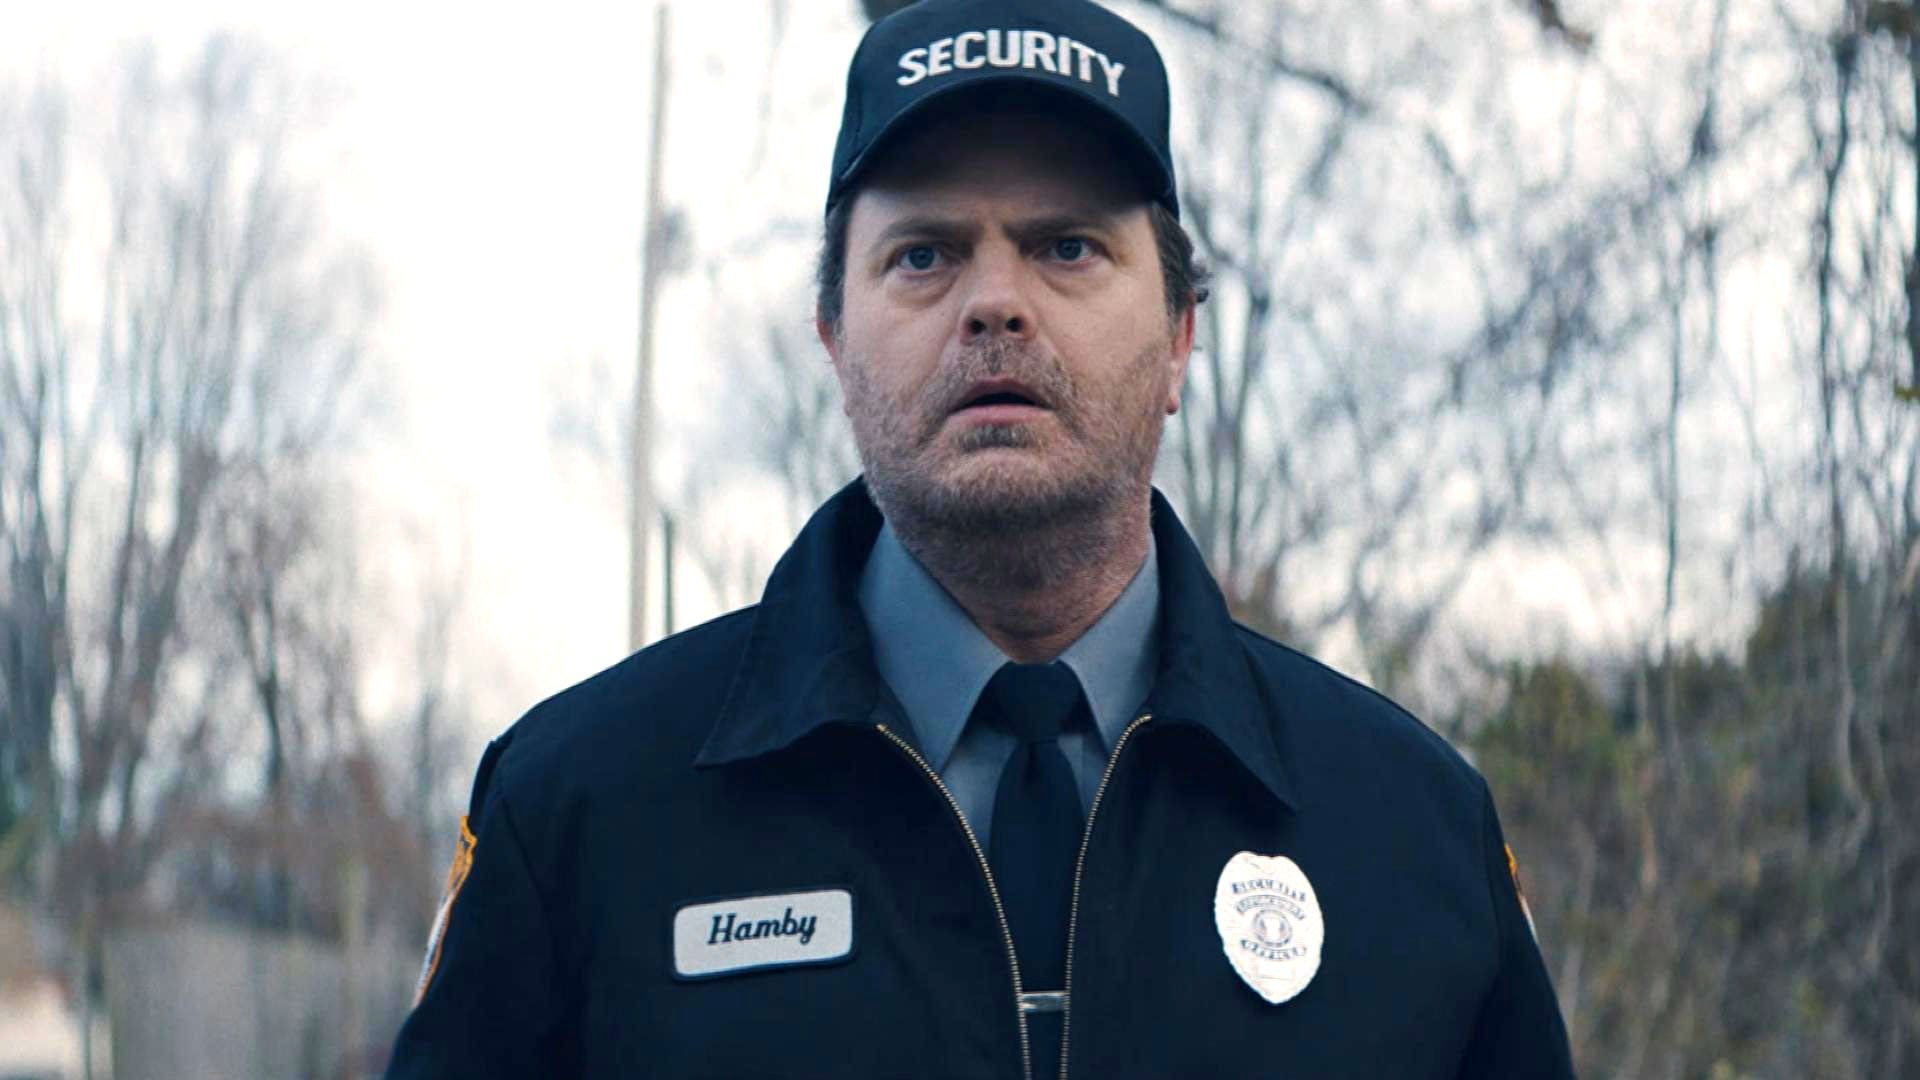 The It List: 'The Office' alum Rainn Wilson stars in new thriller, 'MLK/FBI' uncovers extent of FBI's surveillance and harassment of Martin Luther King Jr., Regina King's directorial debut arrives on Amazon and the best in pop culture the week of Jan. 11, 2021